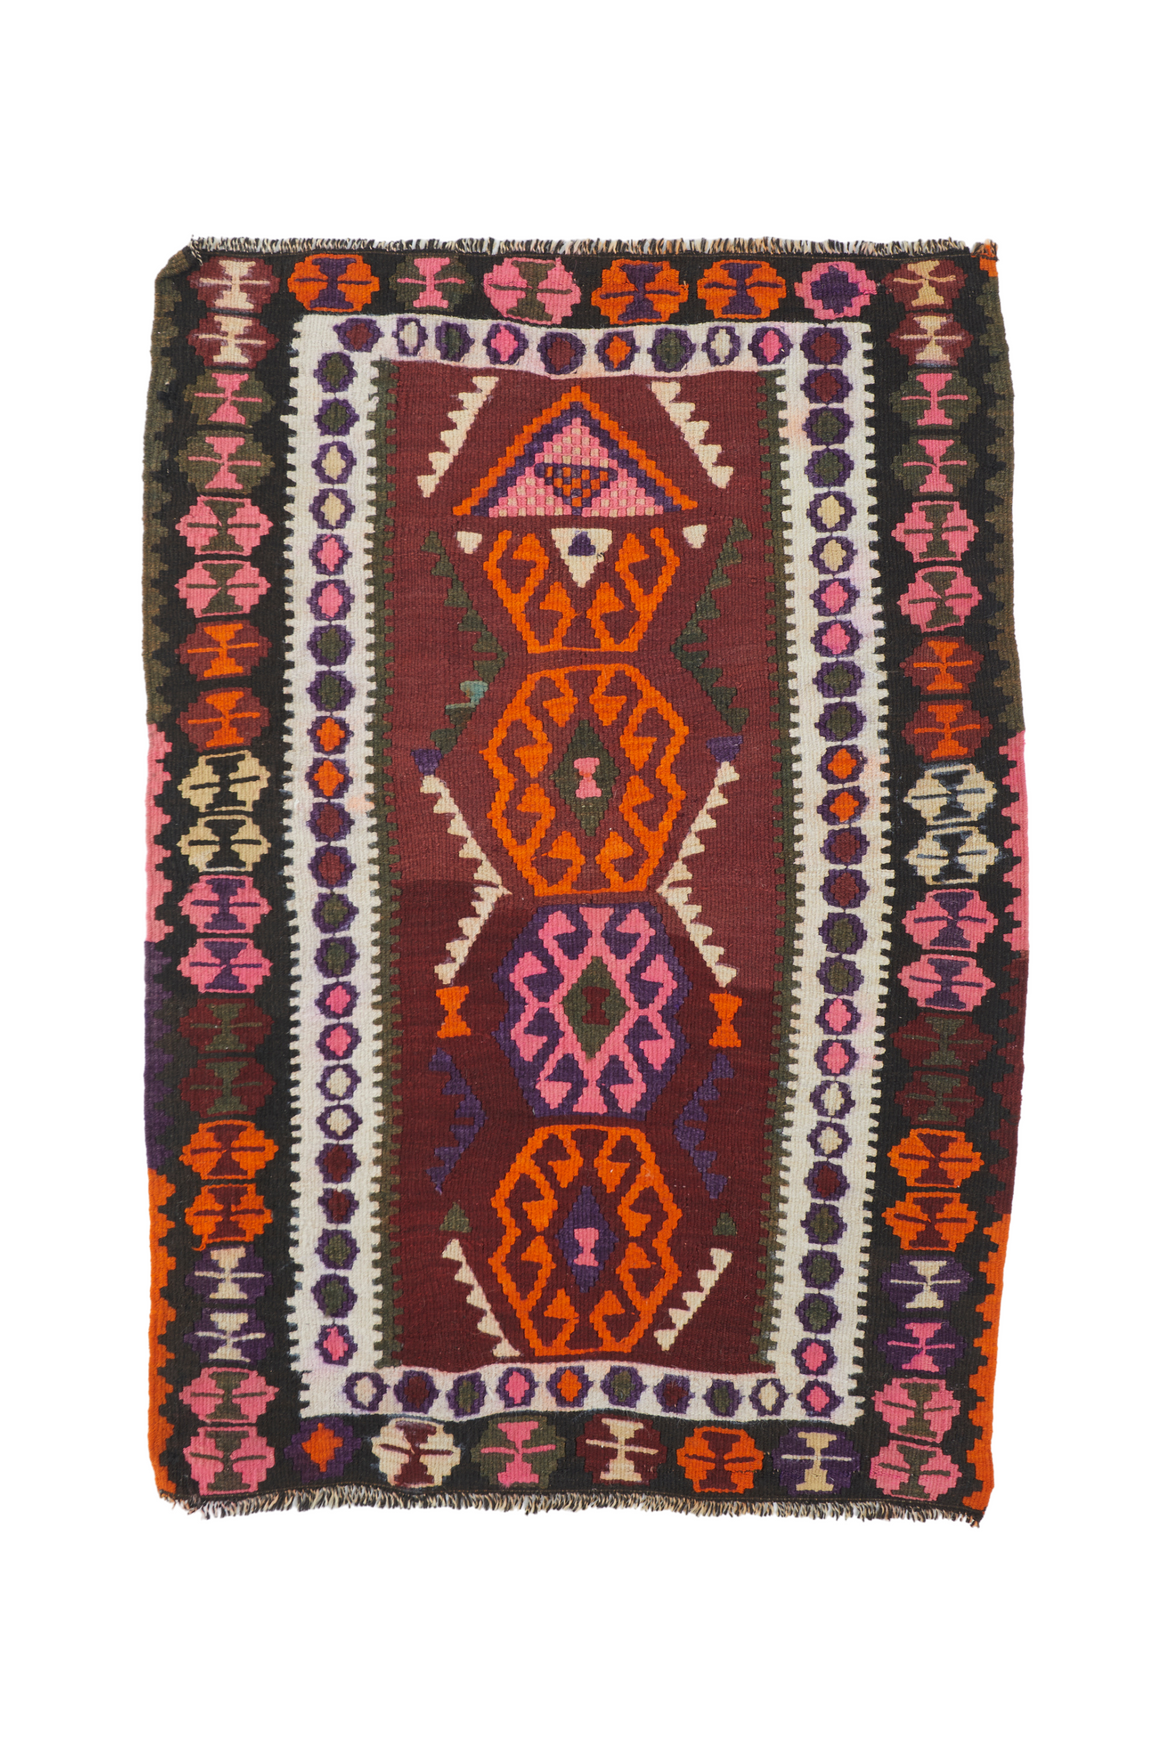 "'Sparkler' Small Vintage Turkish Kilim Rug - 3'1"" x 4'5"""